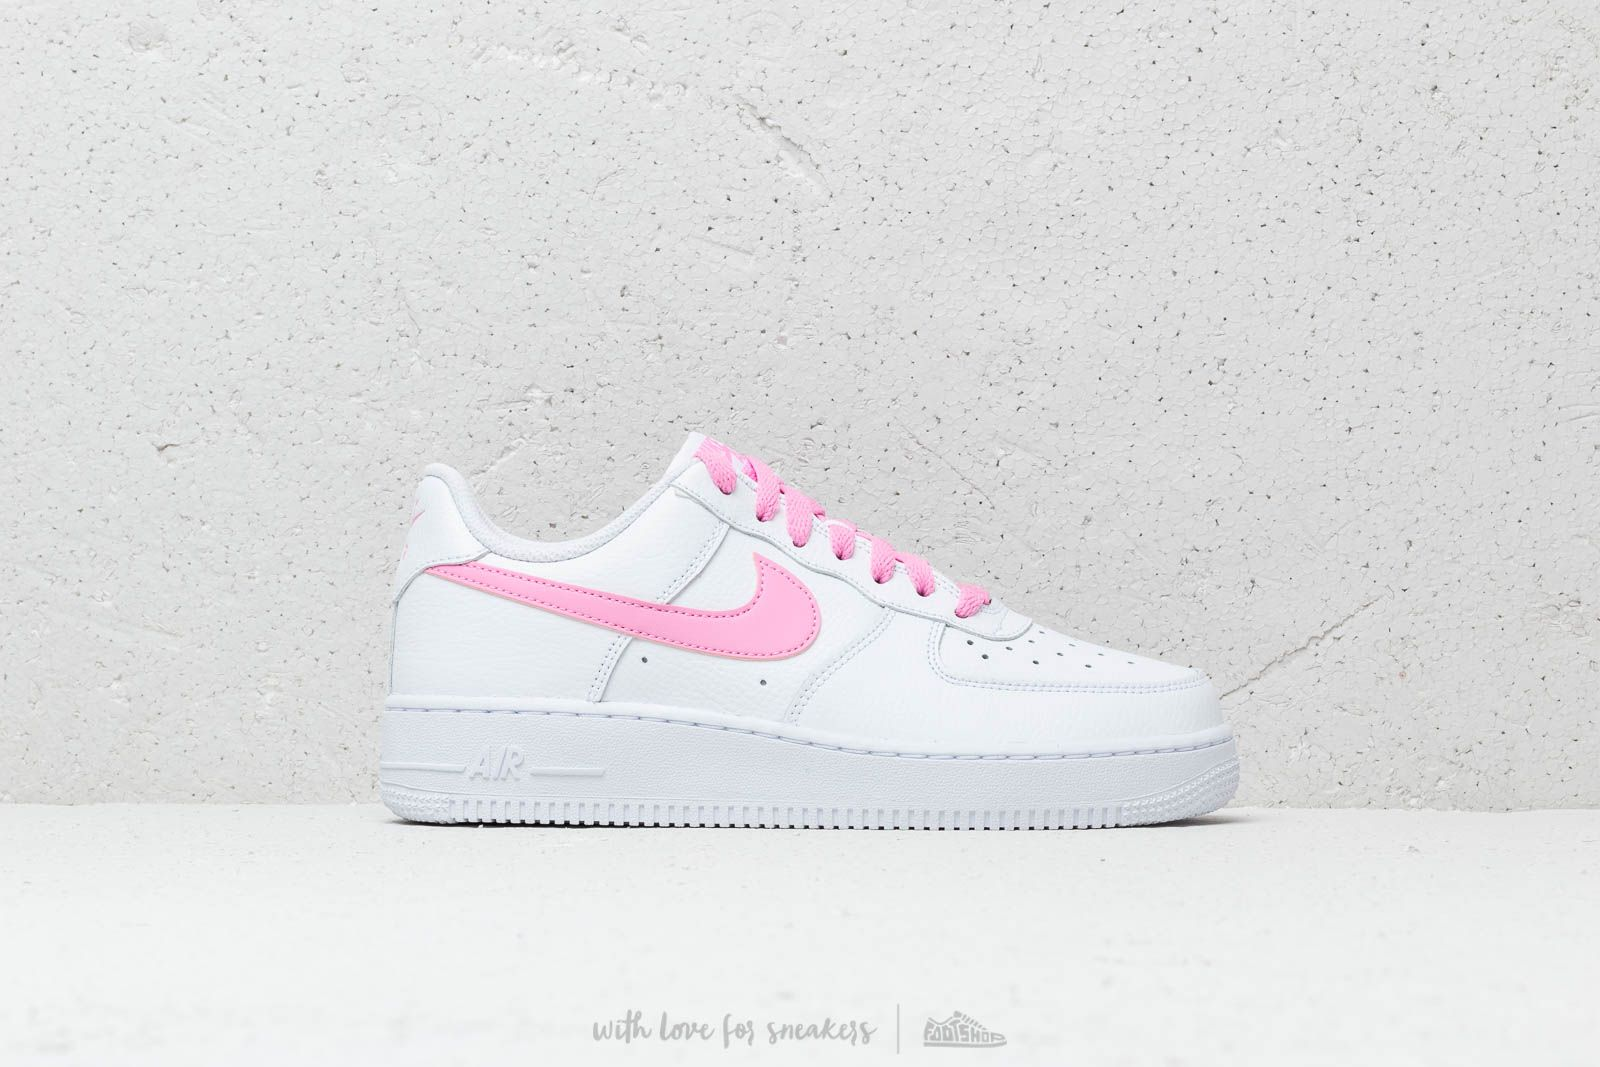 465744a1dbd2 Nike Wmns Air Force 1  07 Ess White  Psychic Pink at a great price